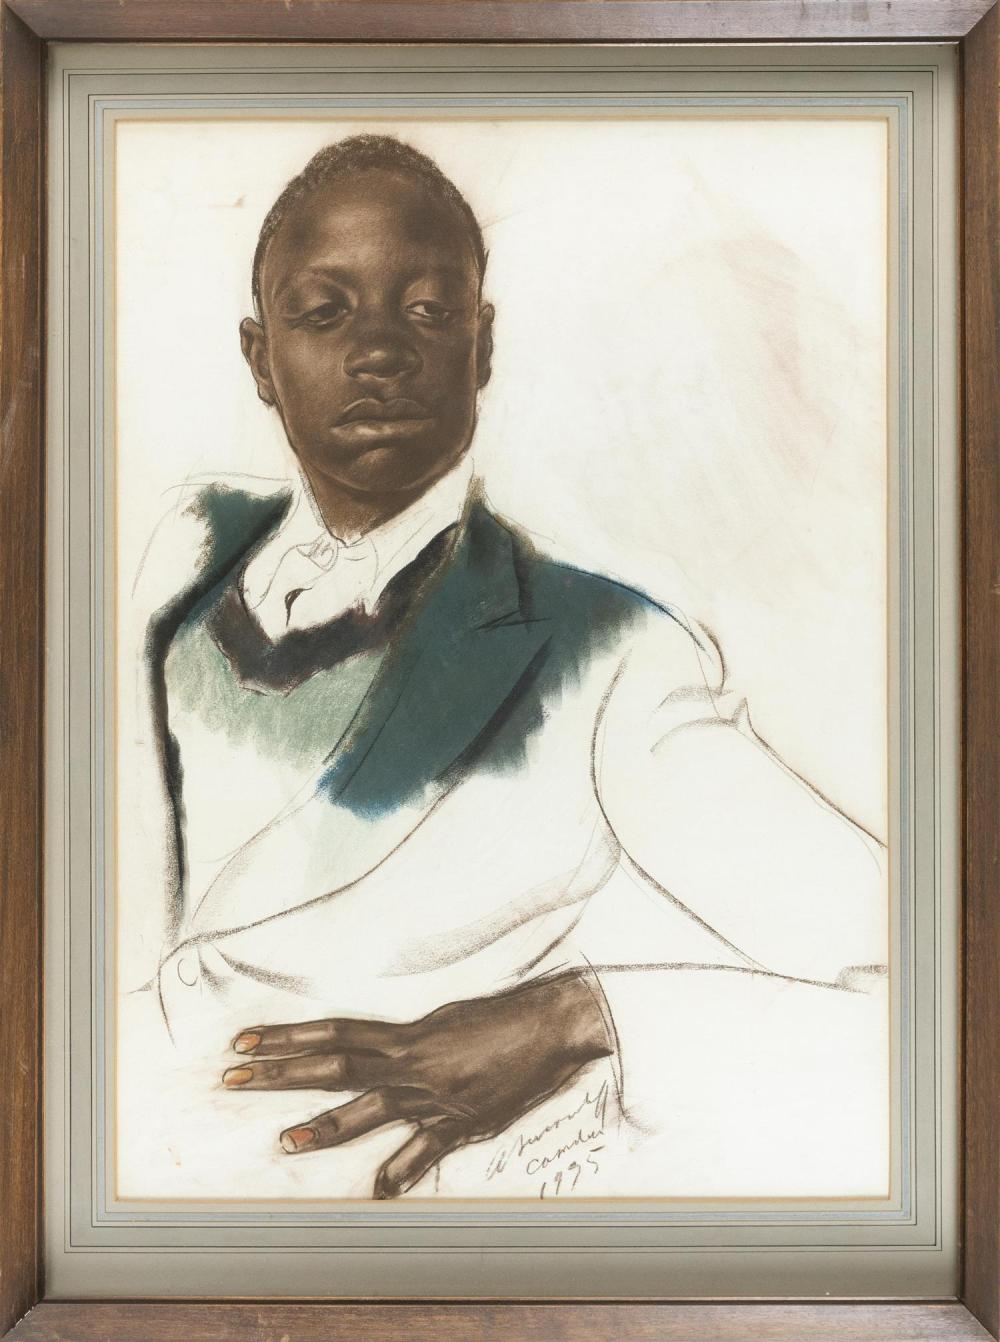 """ALEXANDRE YEVGENIEVICH YAKOVLEV, Russian Federation, 1887-1938, """"Camden, 1925"""" ., Charcoal, pastel and pencil on paper, 26"""" x 19"""" Fr..."""